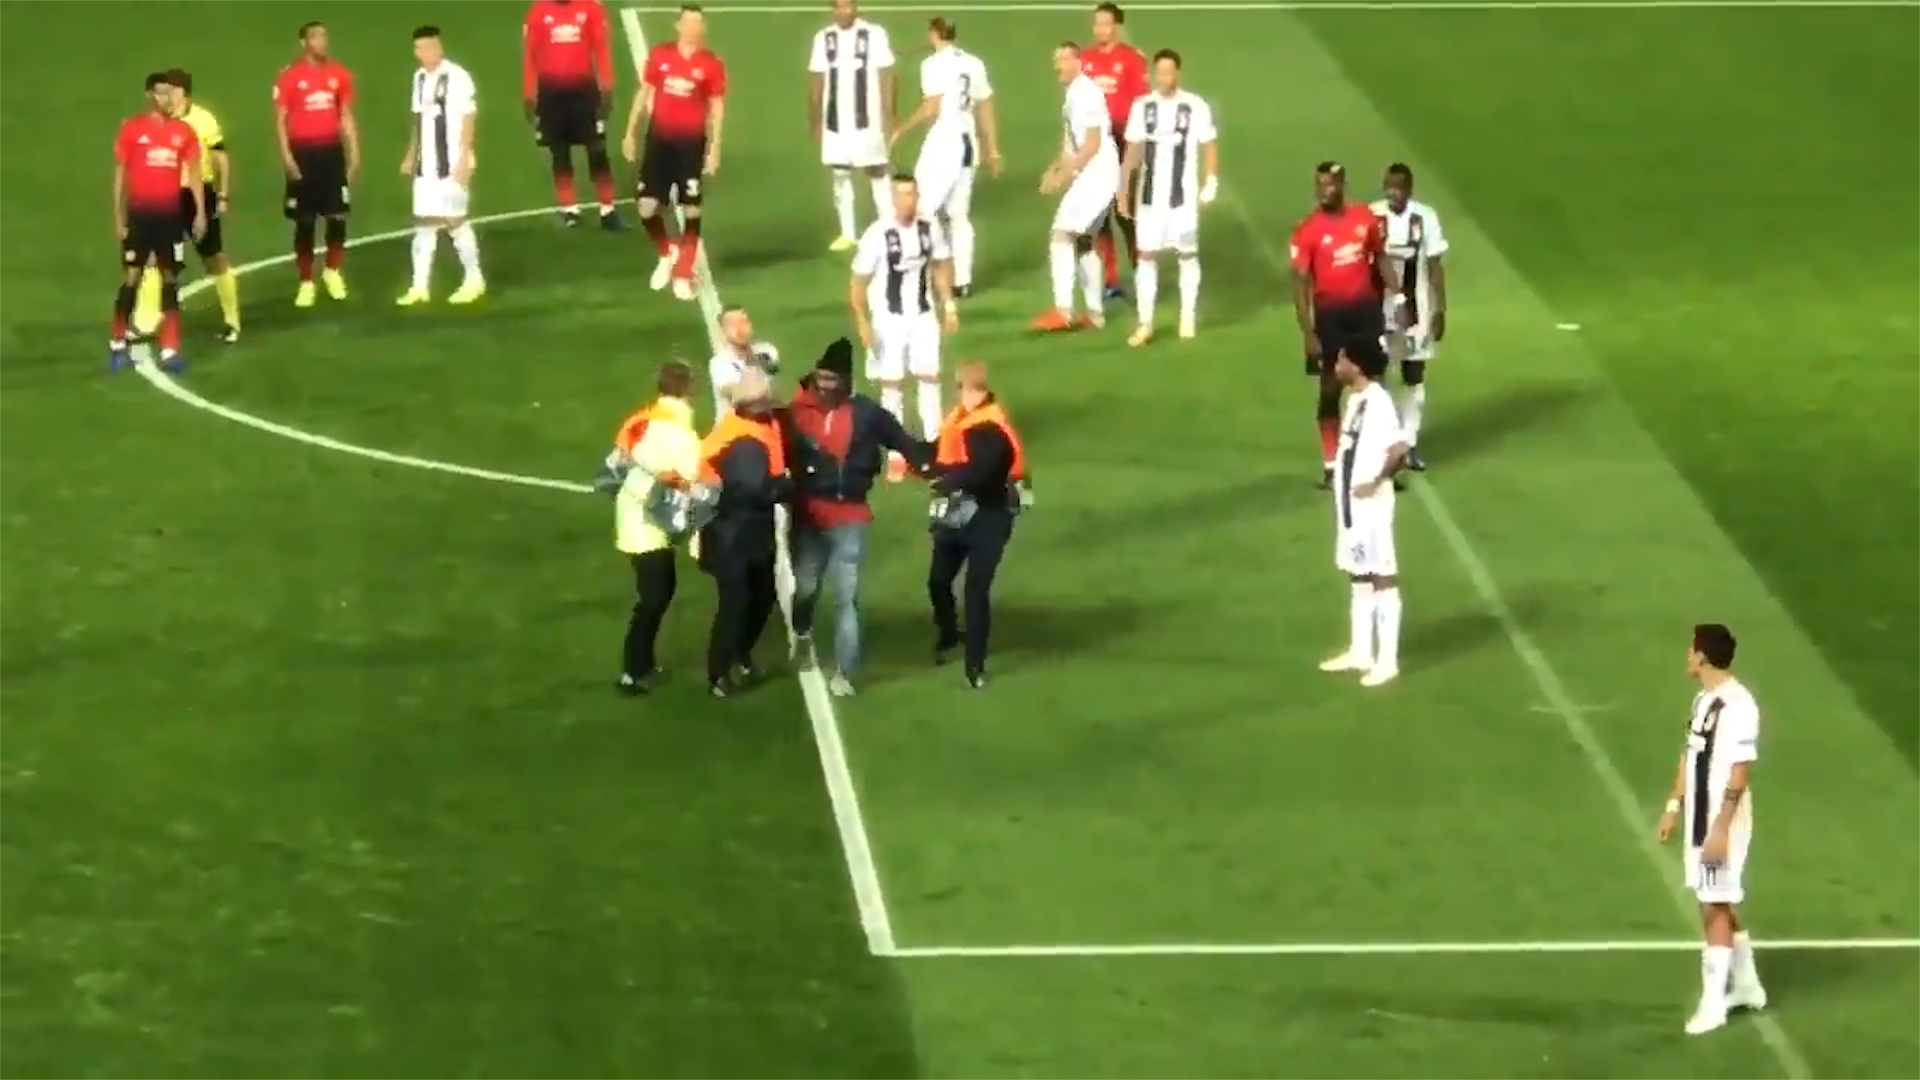 Pitch invader desperate to meet Ronaldo